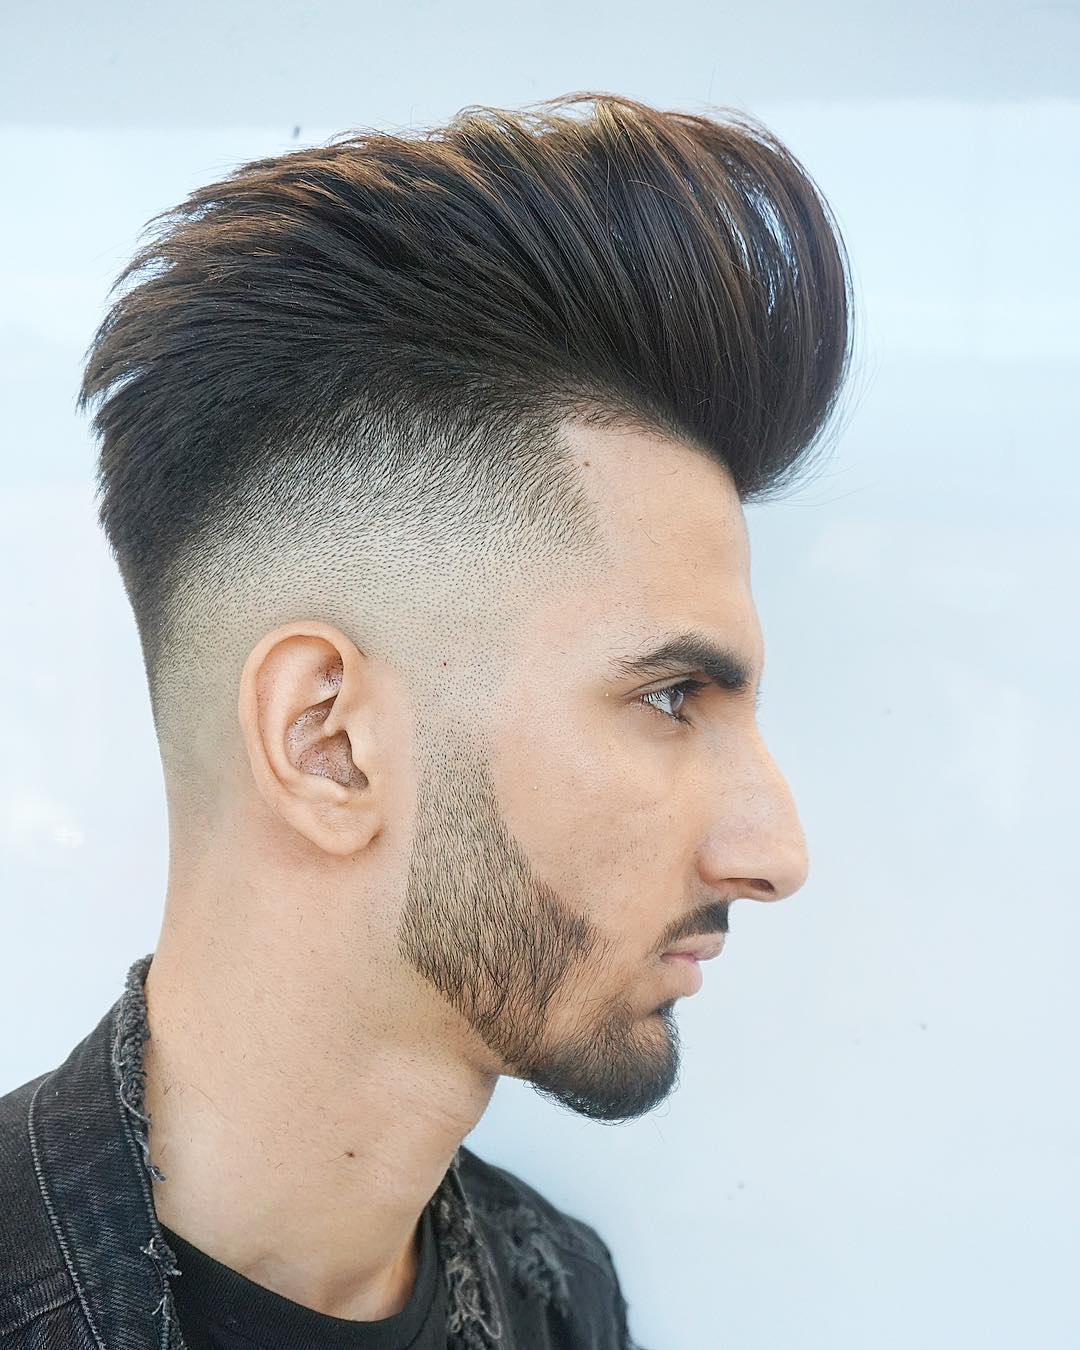 Amazing Menspiresalon Drop Fade Tall Pompadour Long Hairstyles For Men 2018